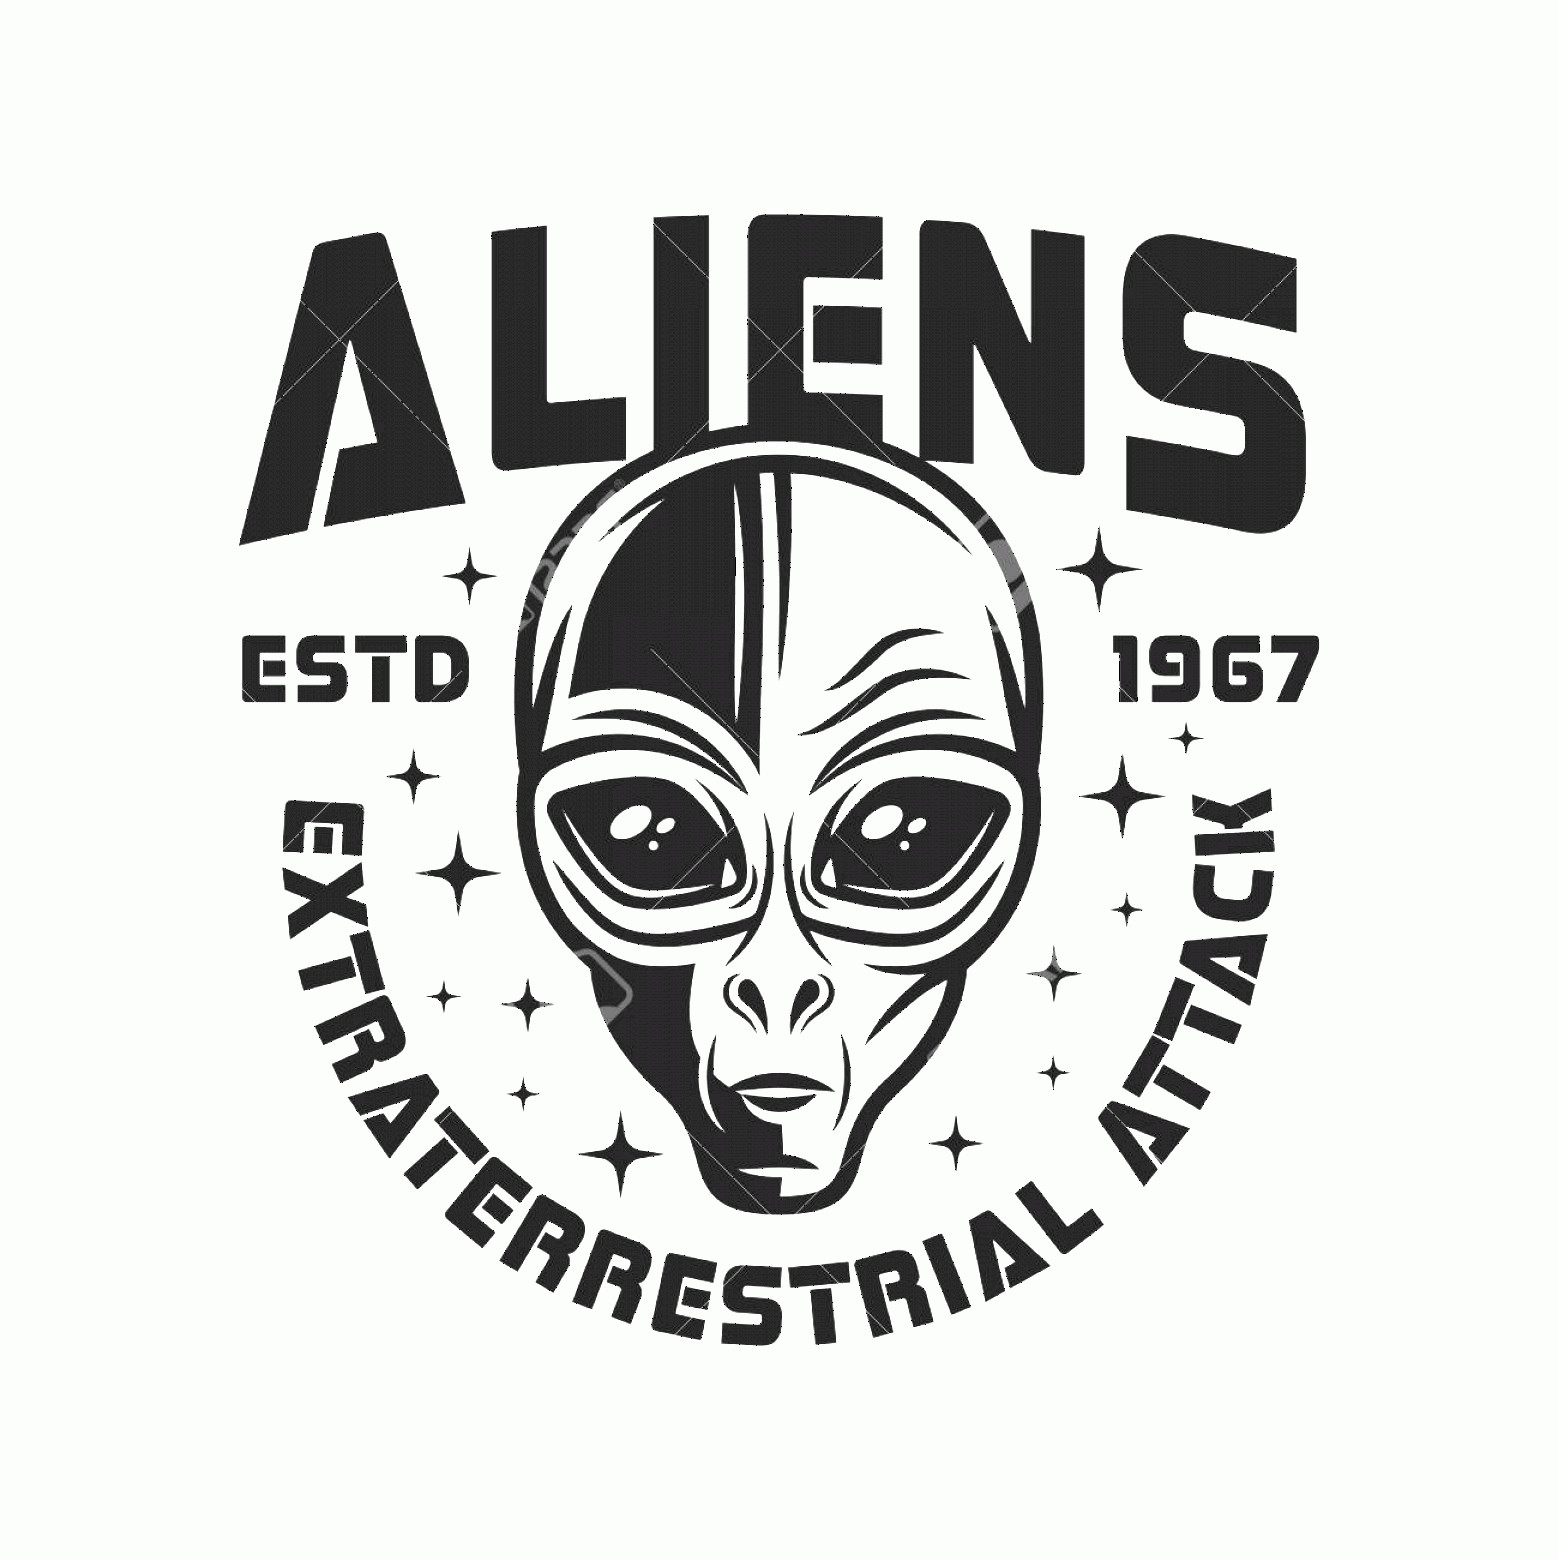 Alien Head Vector: Photostock Vector Alien Head Vector Emblem In Vintage Monochrome Style Isolated On White Background